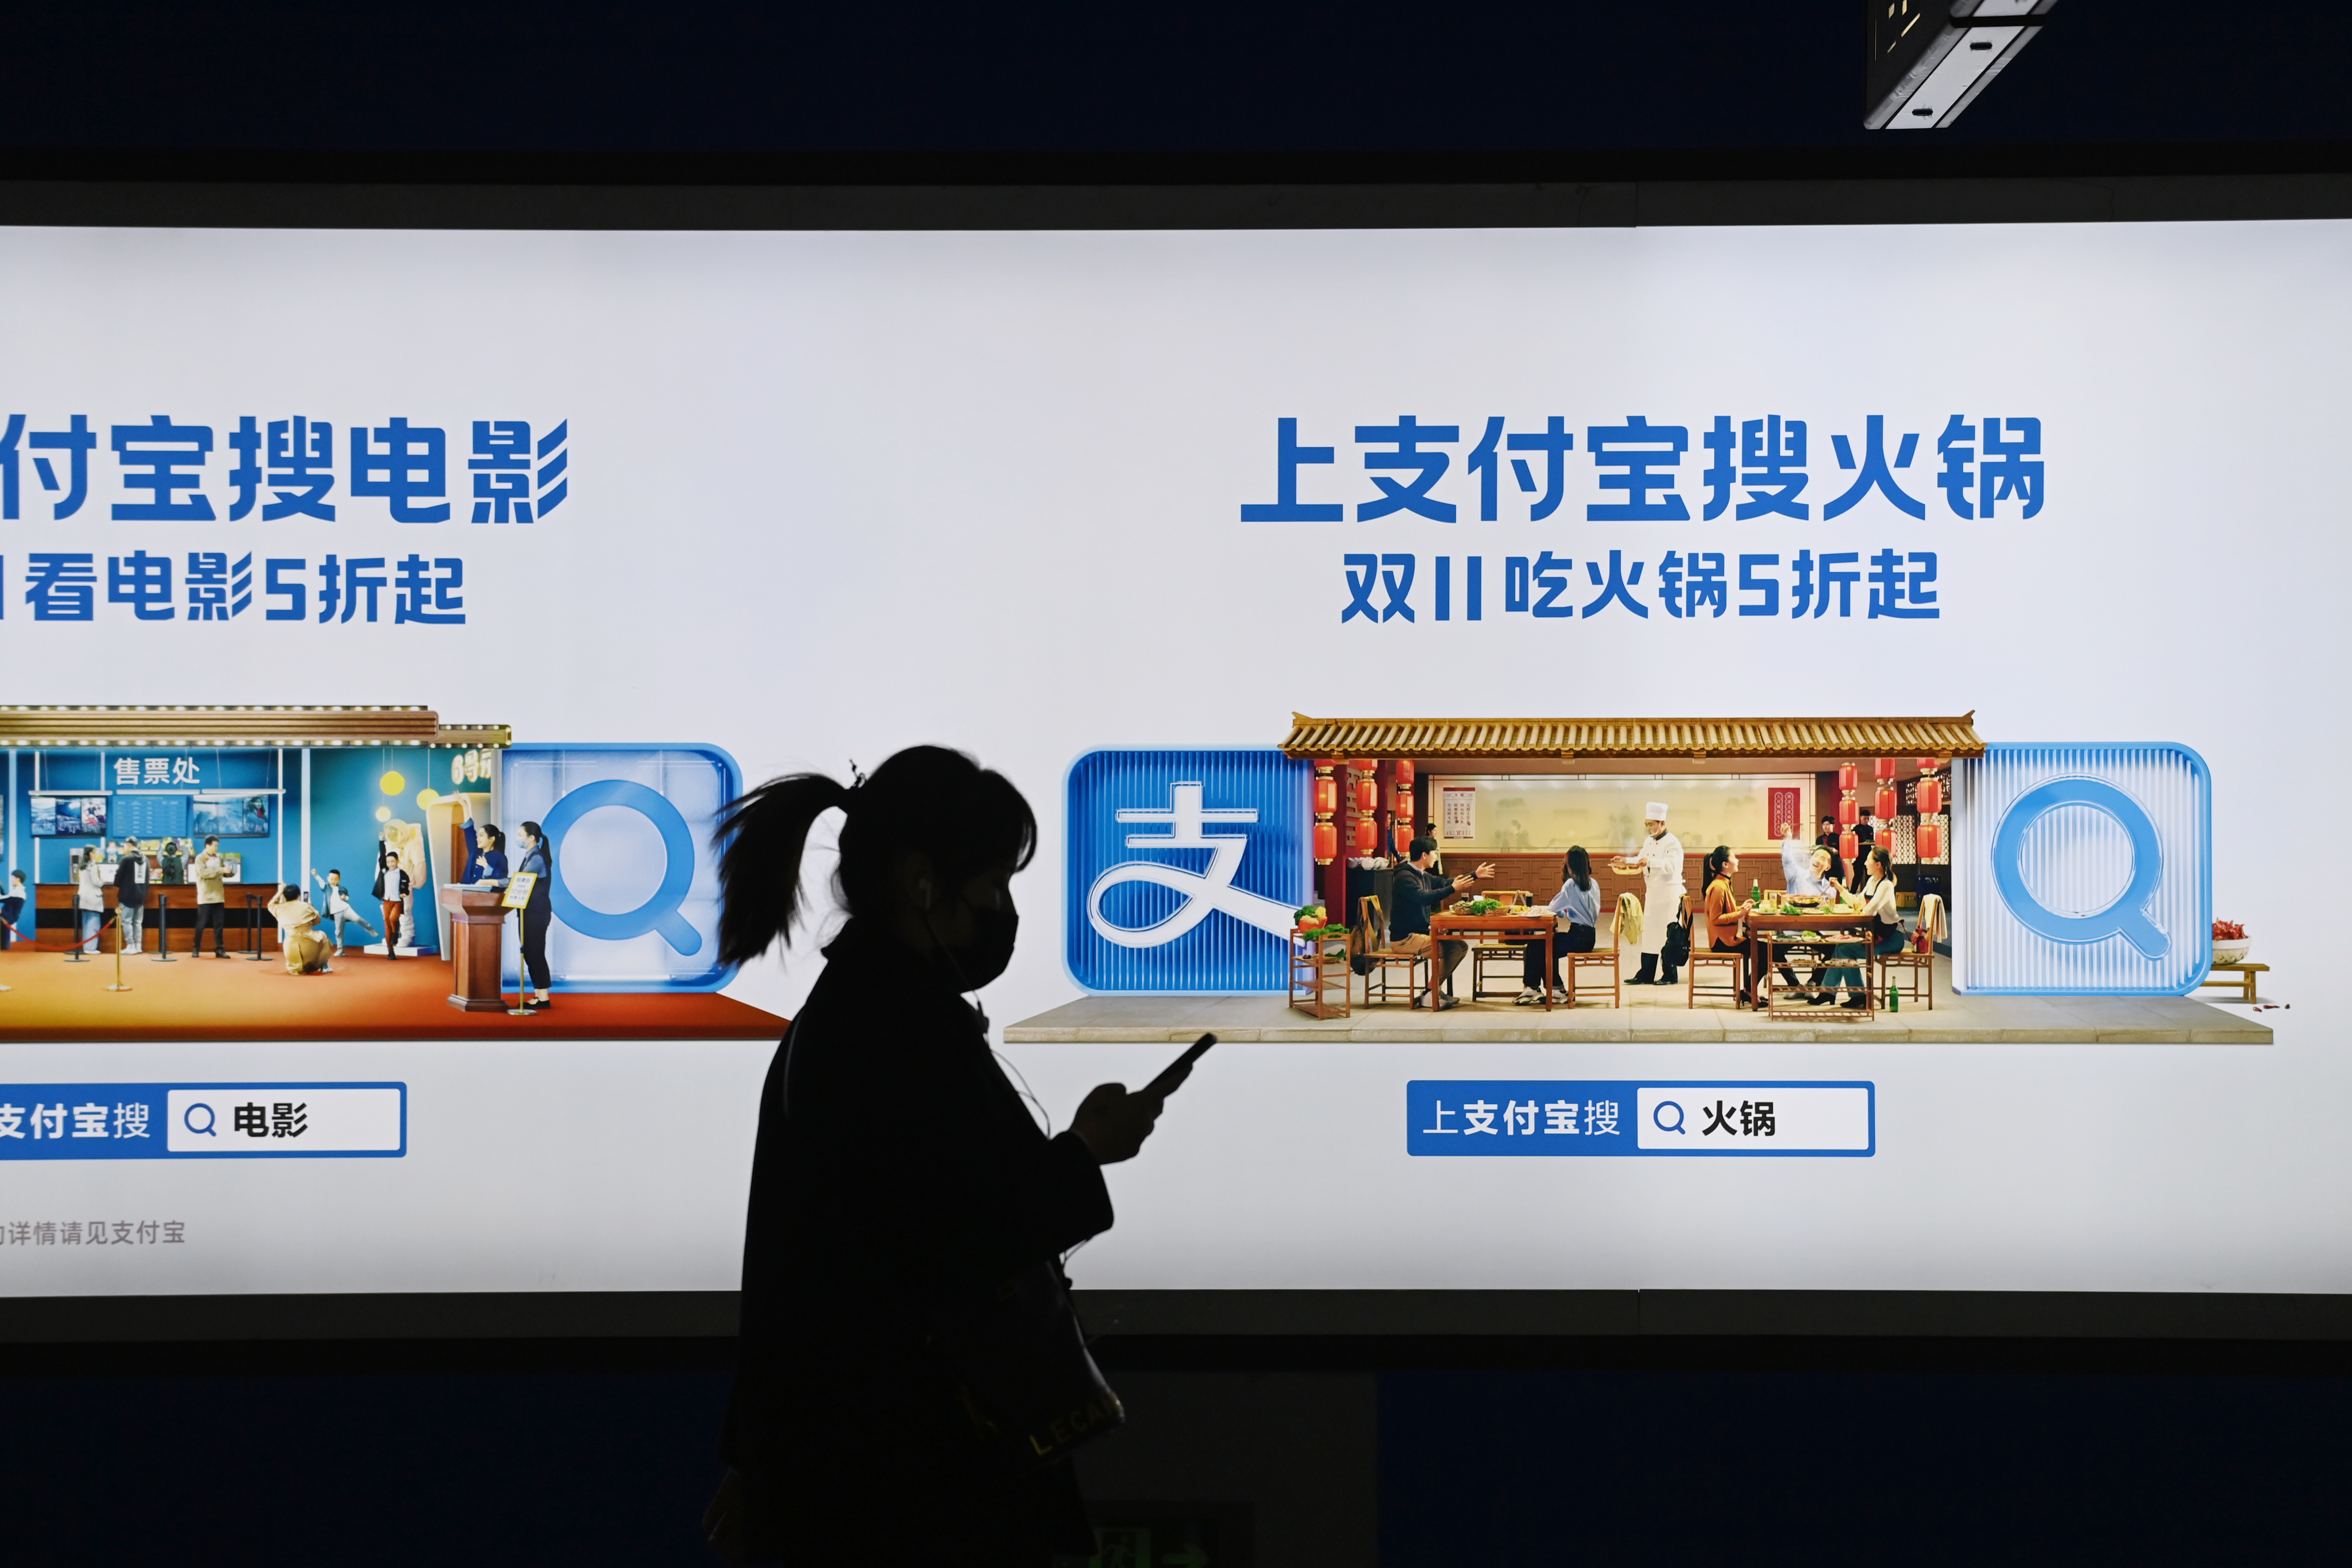 Trump bans transactions with Alipay and seven other Chinese apps: report